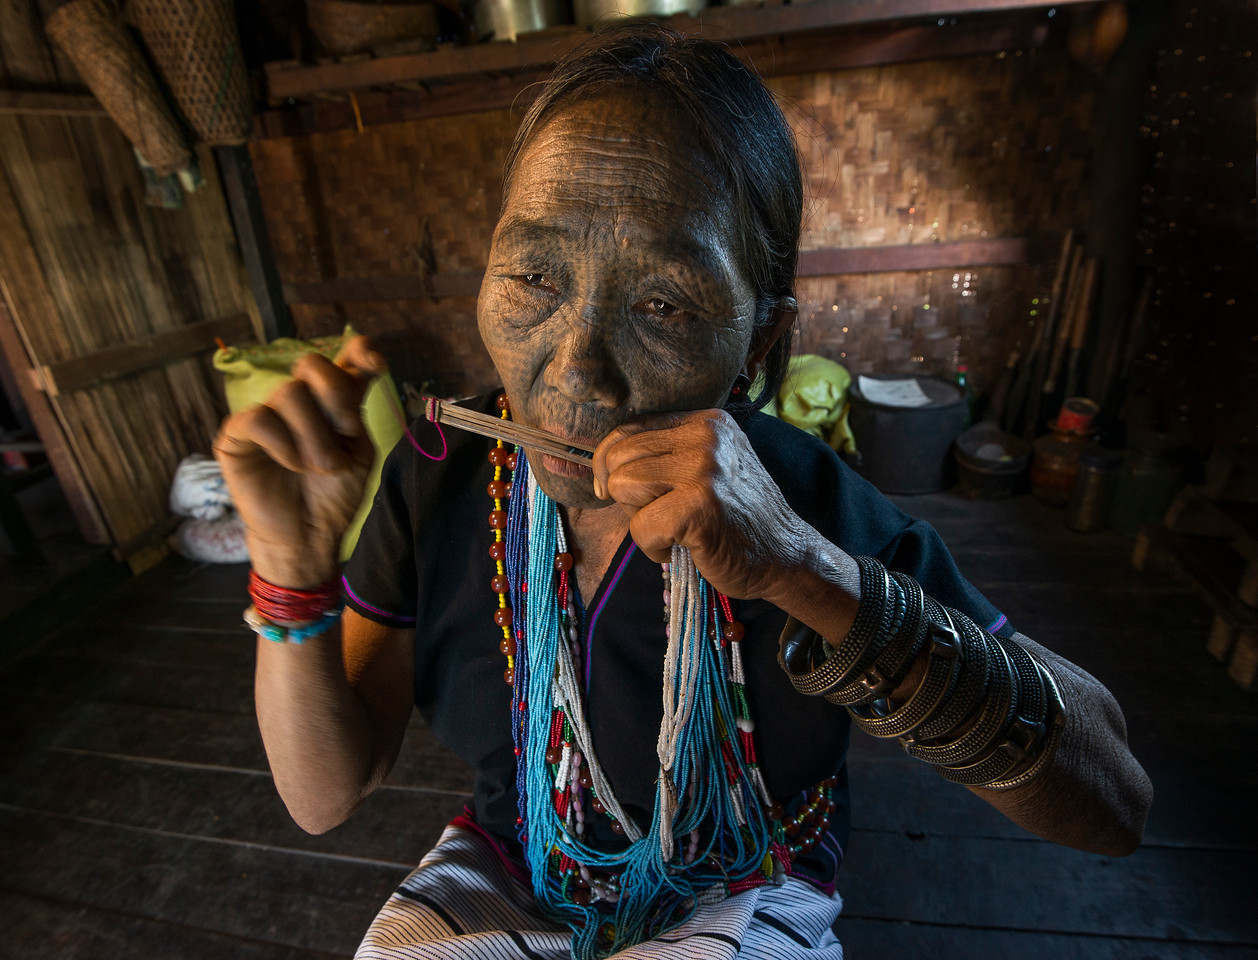 This is Pwe Htang a 70 year old lady from the Daai Tribe. She lives in a small hamlet outside Kampetlet. Pwe learned to play the nose flute and a small, harp type instrument at the age of 14.  She learned to play by watching others in the village. At the young age of 15 she decided to have her face tattooed. She recalls how there was a lot of pressure put on her by others in the village. They explained that she would not be able to find a husband without the tattoos. She did marry eventually but her husband died recently and she now lives with her only son. <br /> <br /> Chin State, Myanmar, 2017